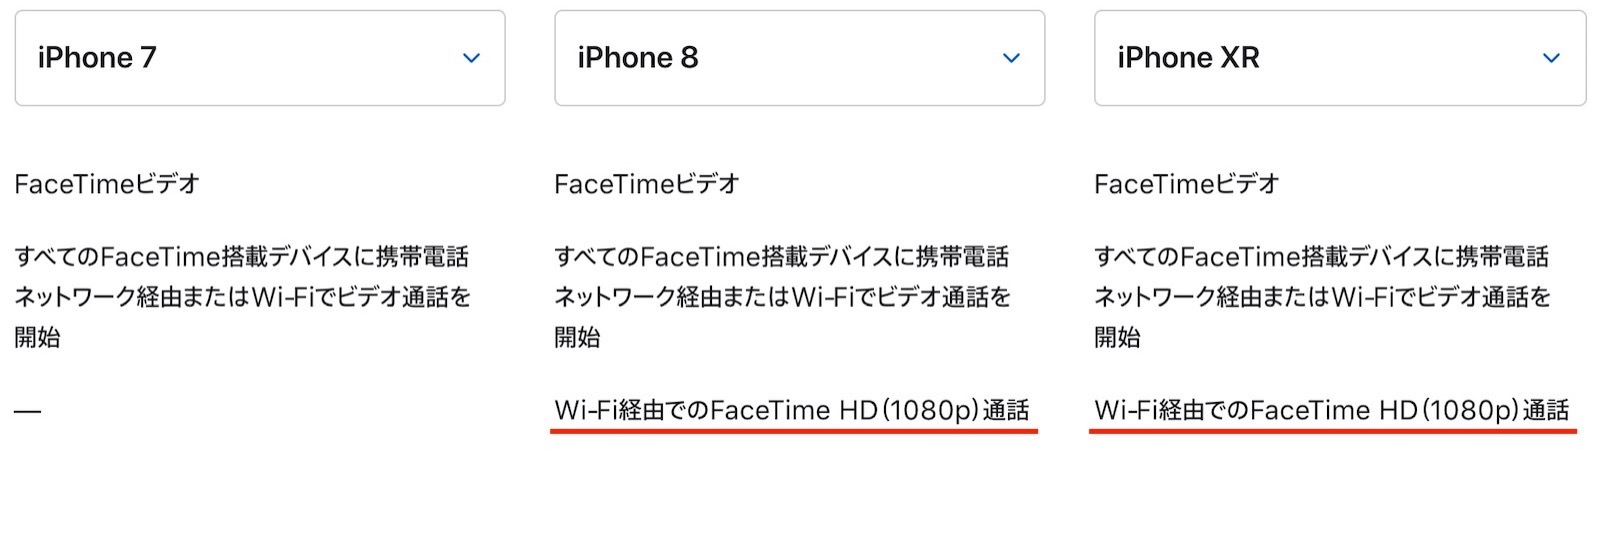 Facetime hd 1080p compatible